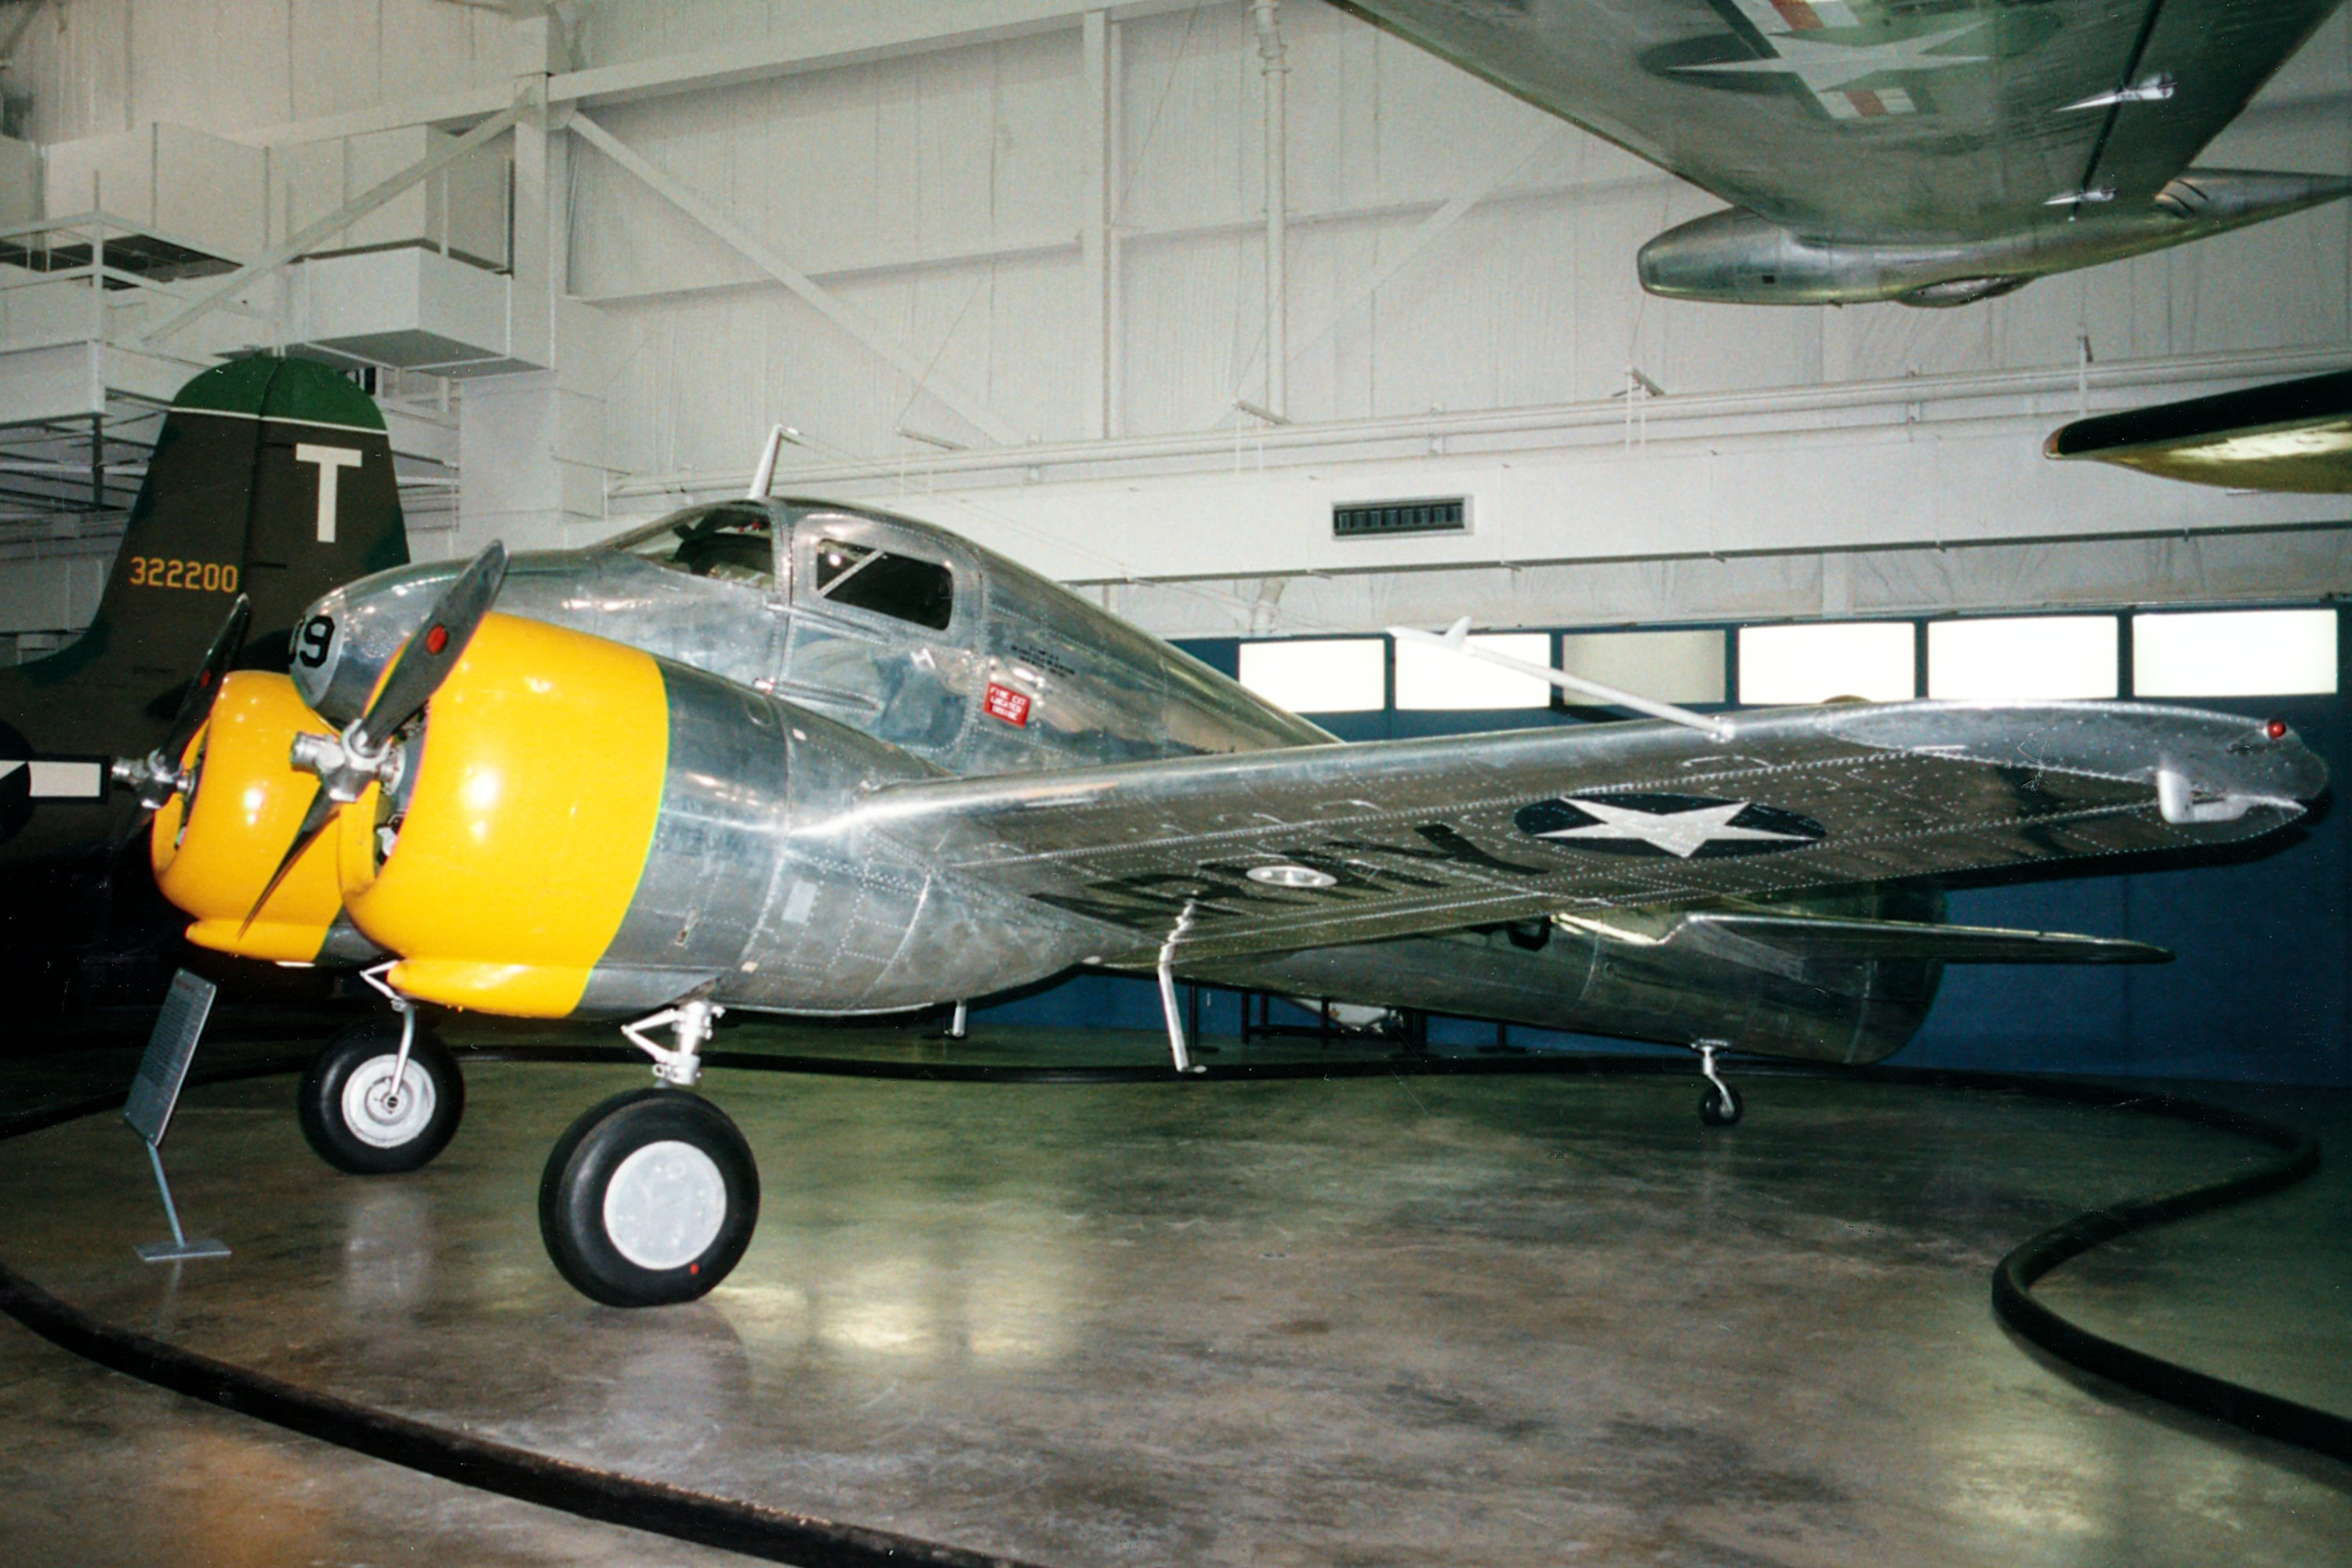 Curtiss-Wright AT-9A Fledgling World War II Twin-engine Trainer